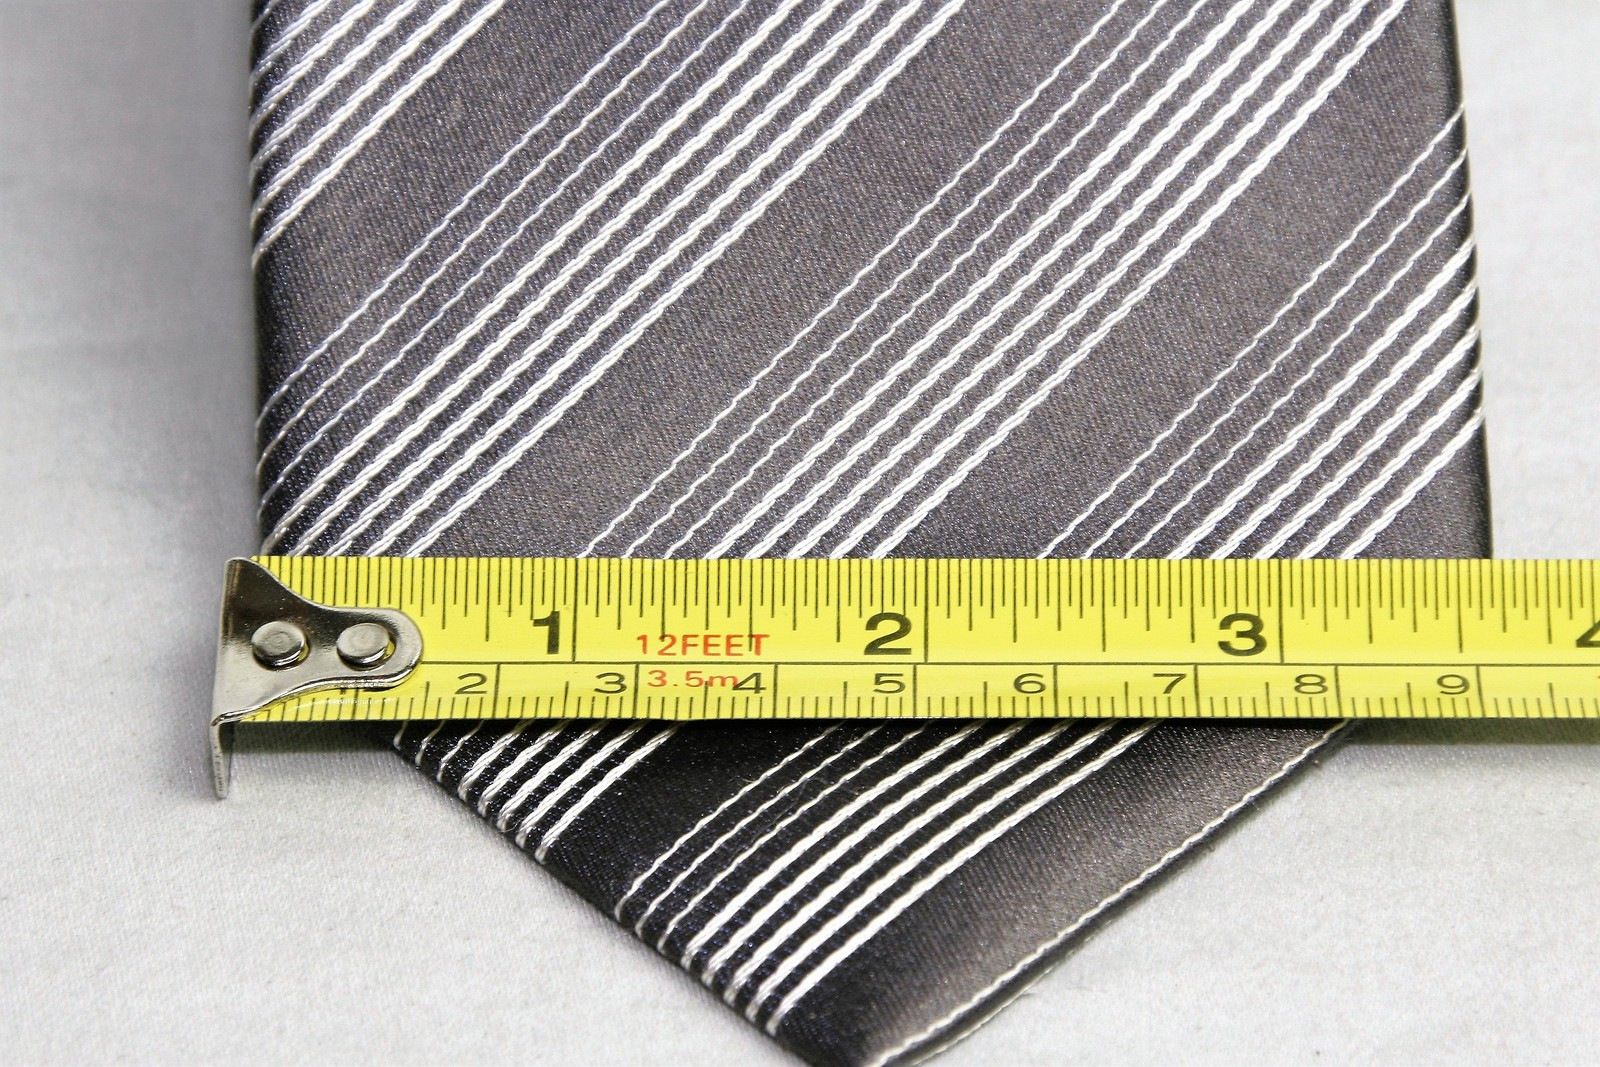 Kenneth Cole Reaction Silver Gray Striped Design 100% Silk Men's Necktie Tie image 2